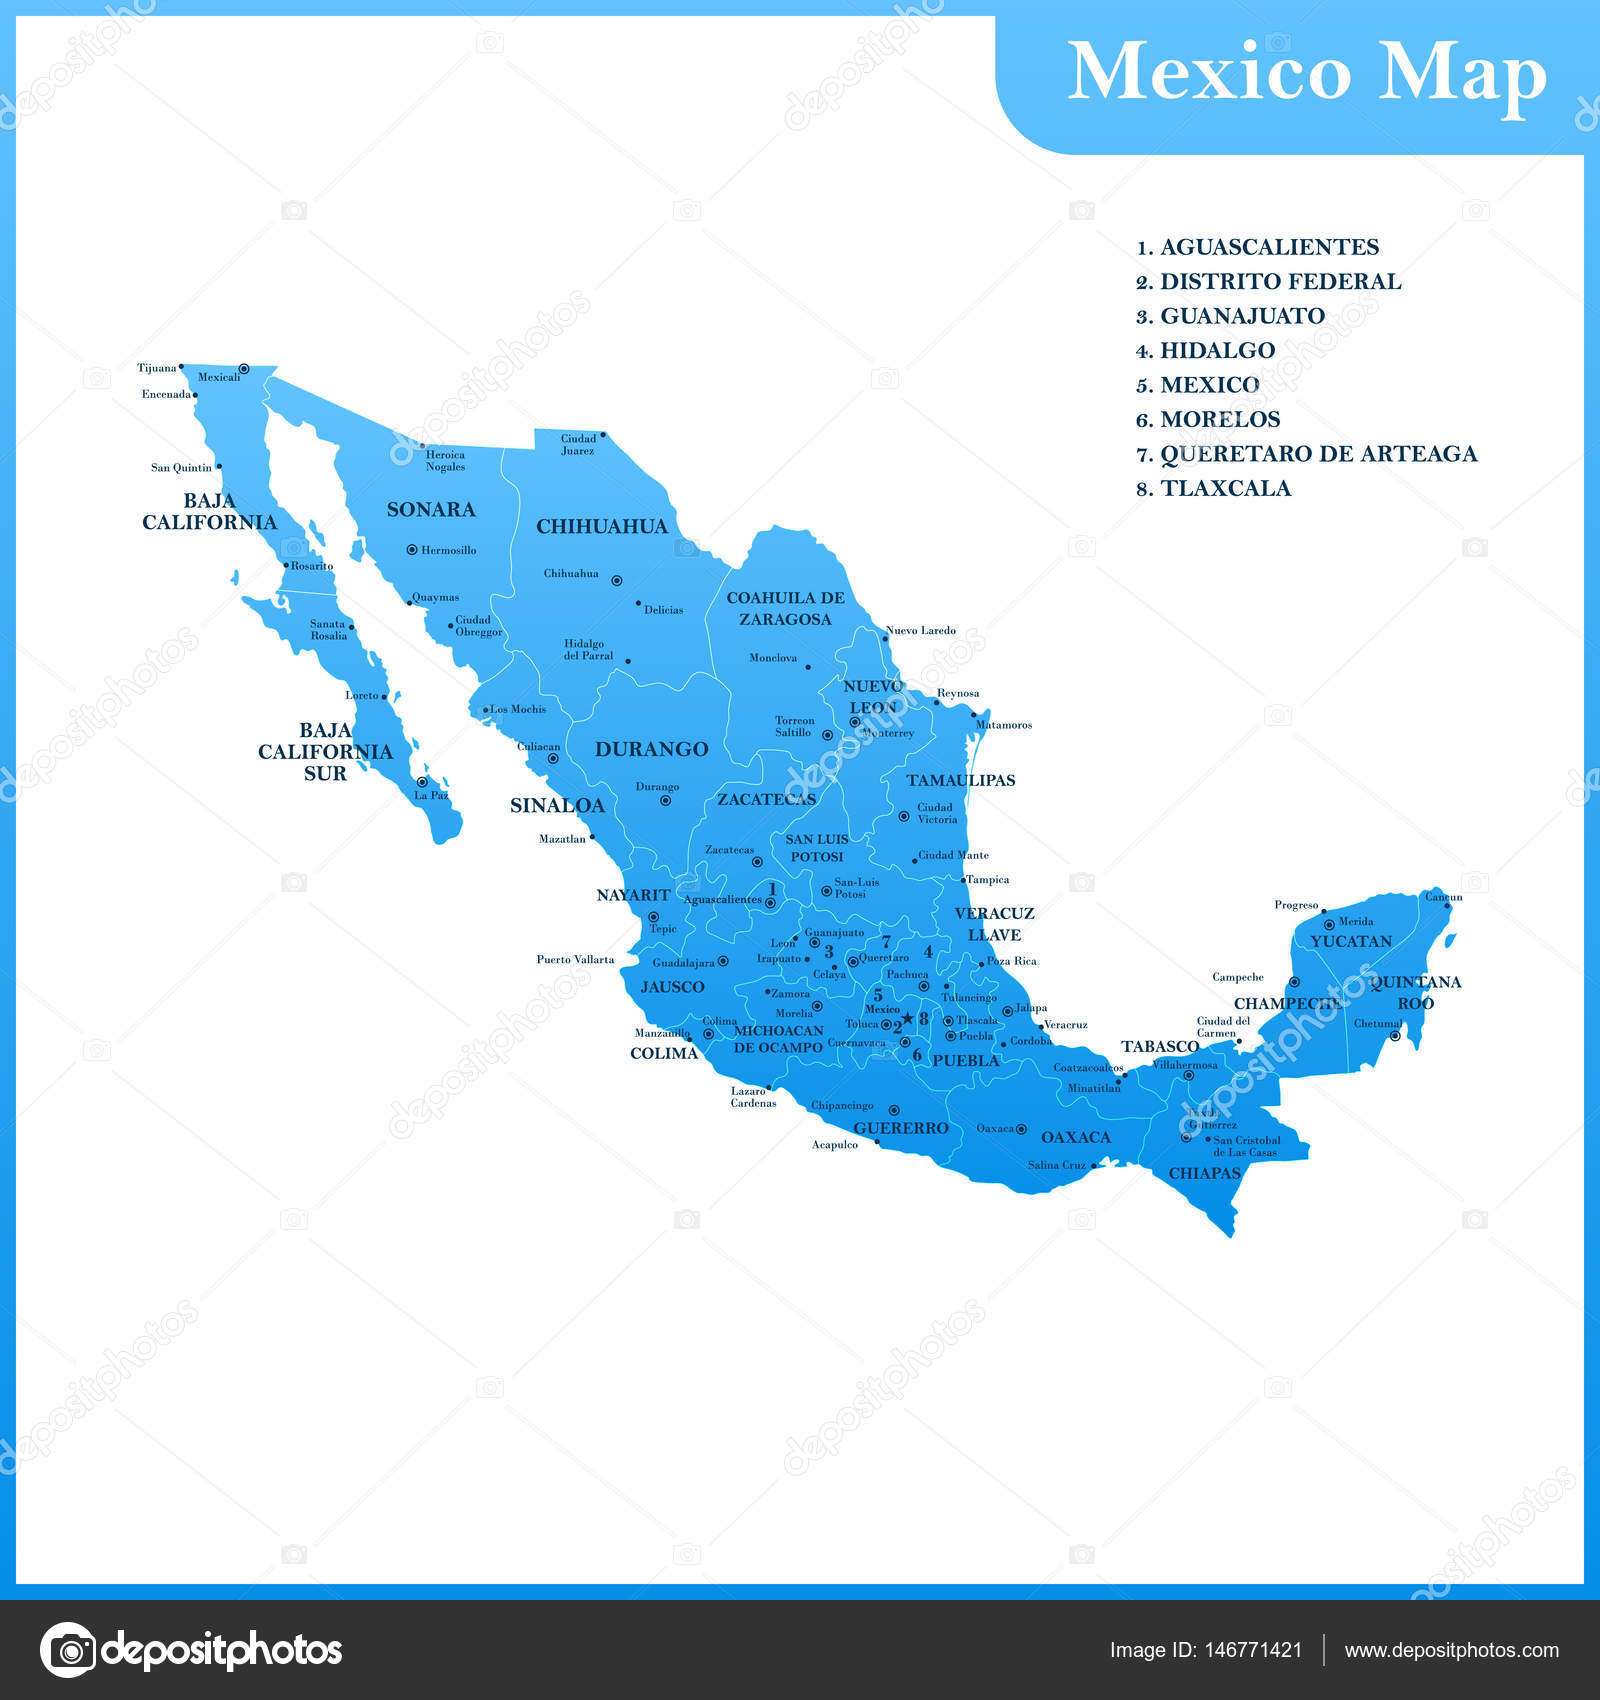 Mexico Map Capitals.The Detailed Map Of The Mexico With Regions Or States And Cities